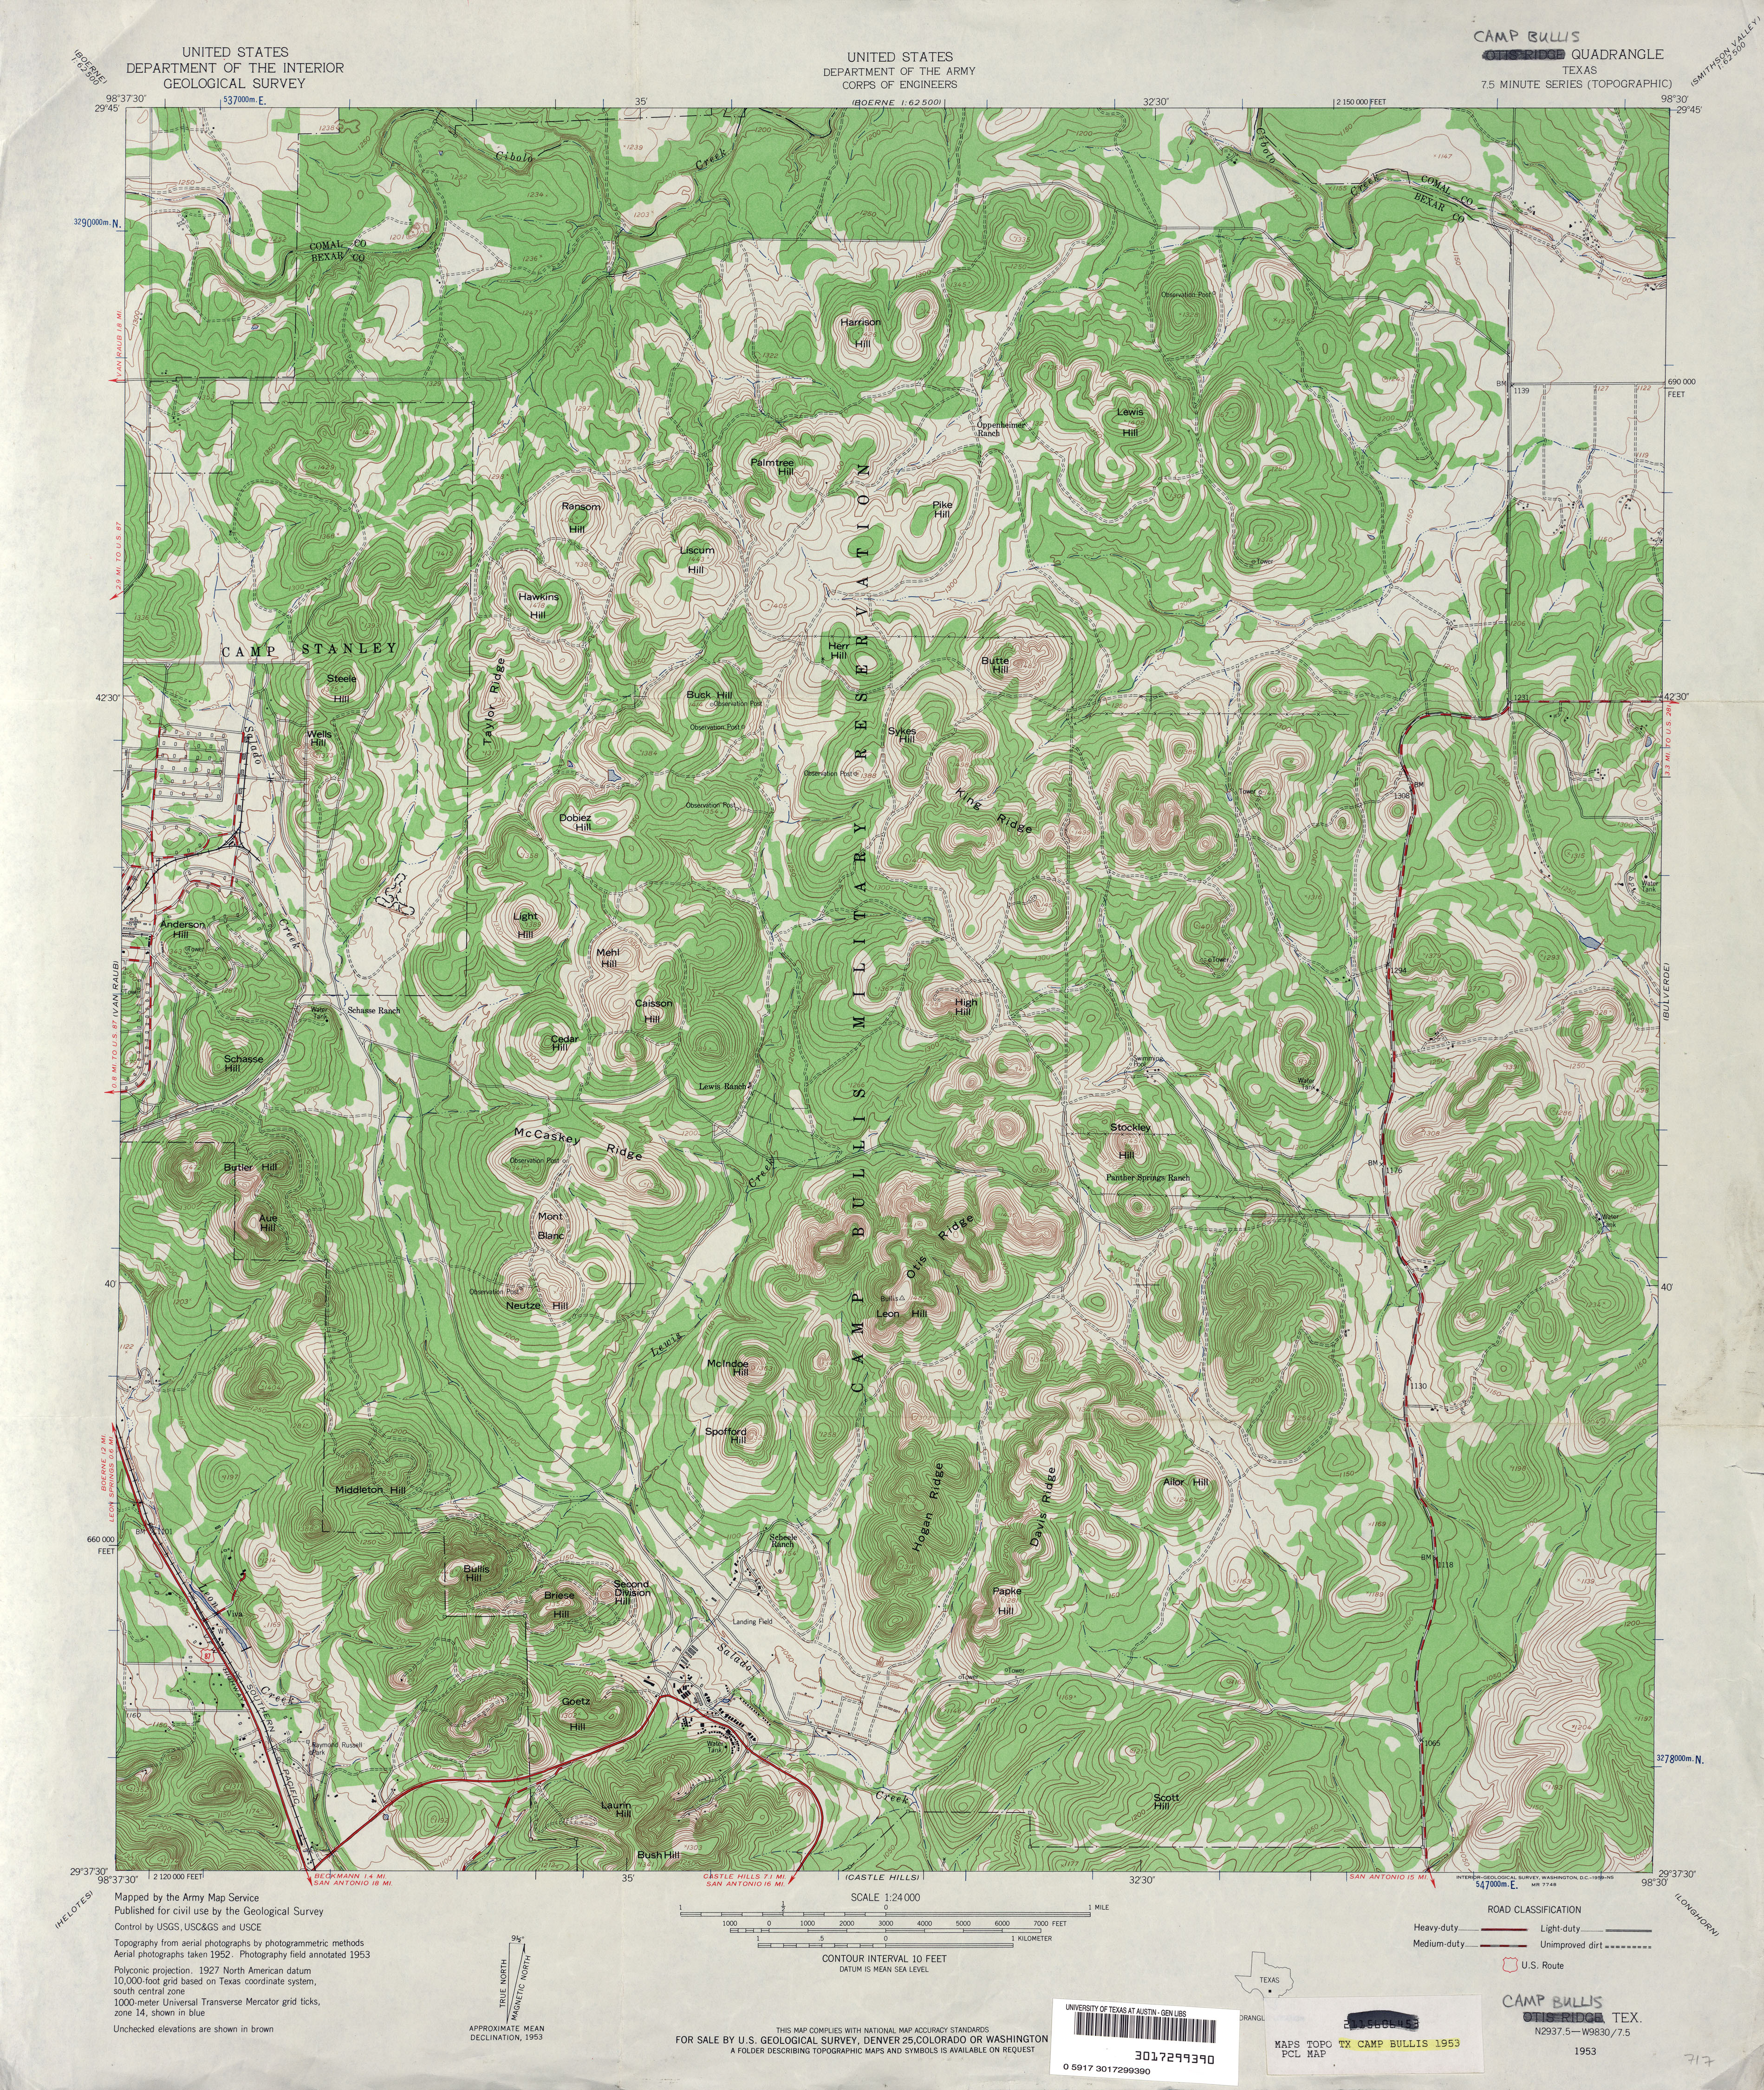 Texas Topographic Maps - Perry-Castañeda Map Collection - UT Liry on